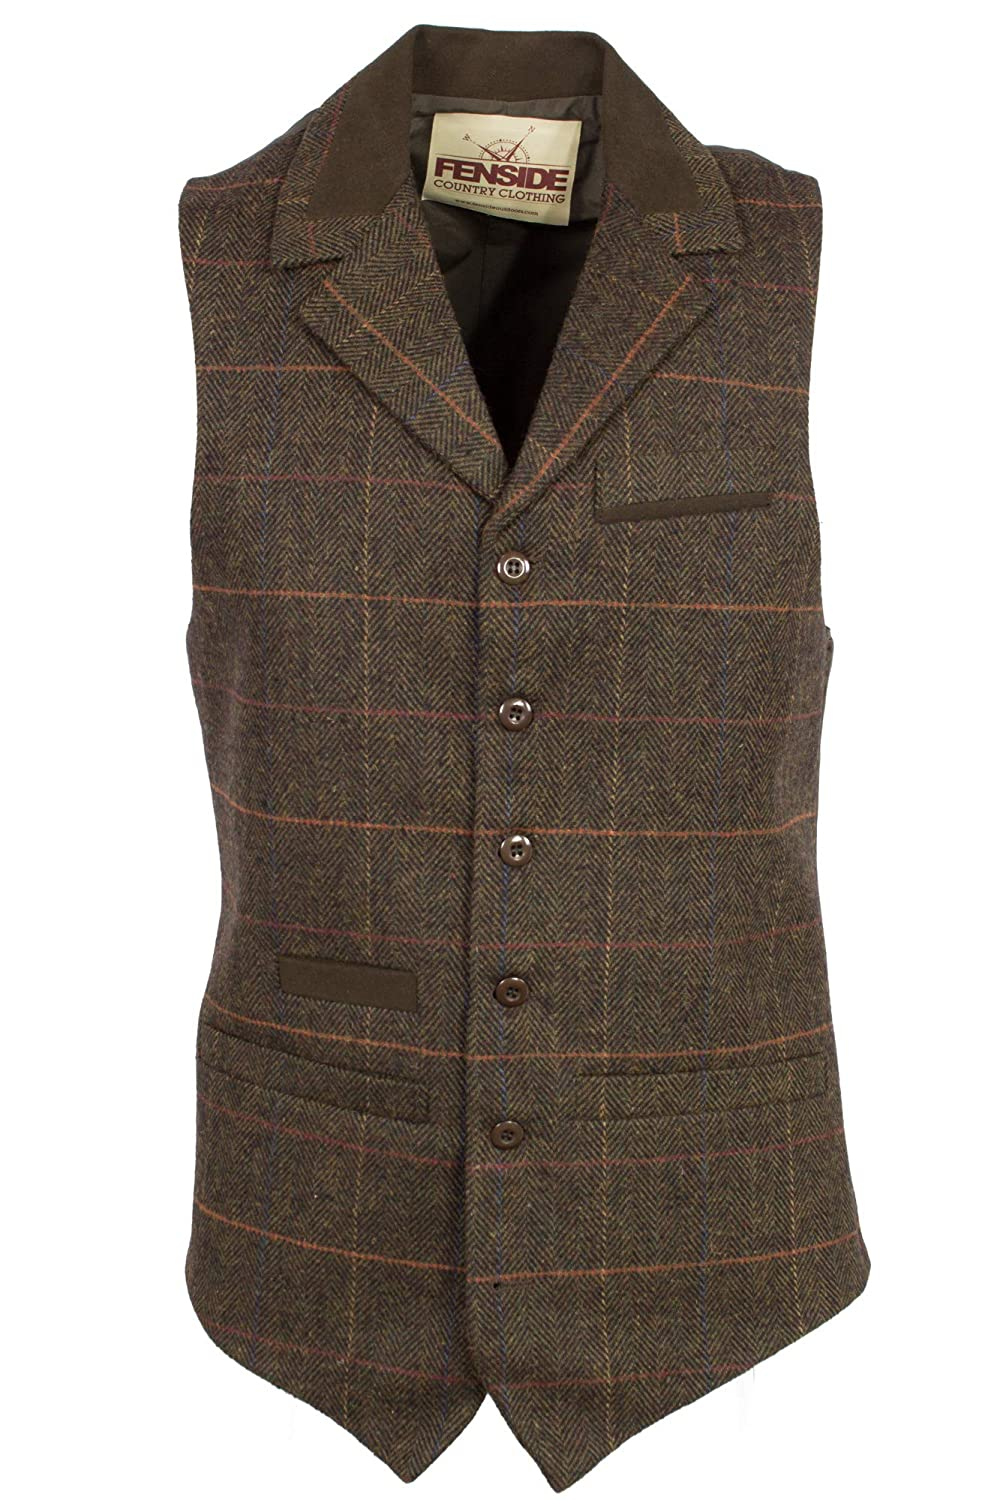 Fenside Country Clothing - Gilet - Uomo